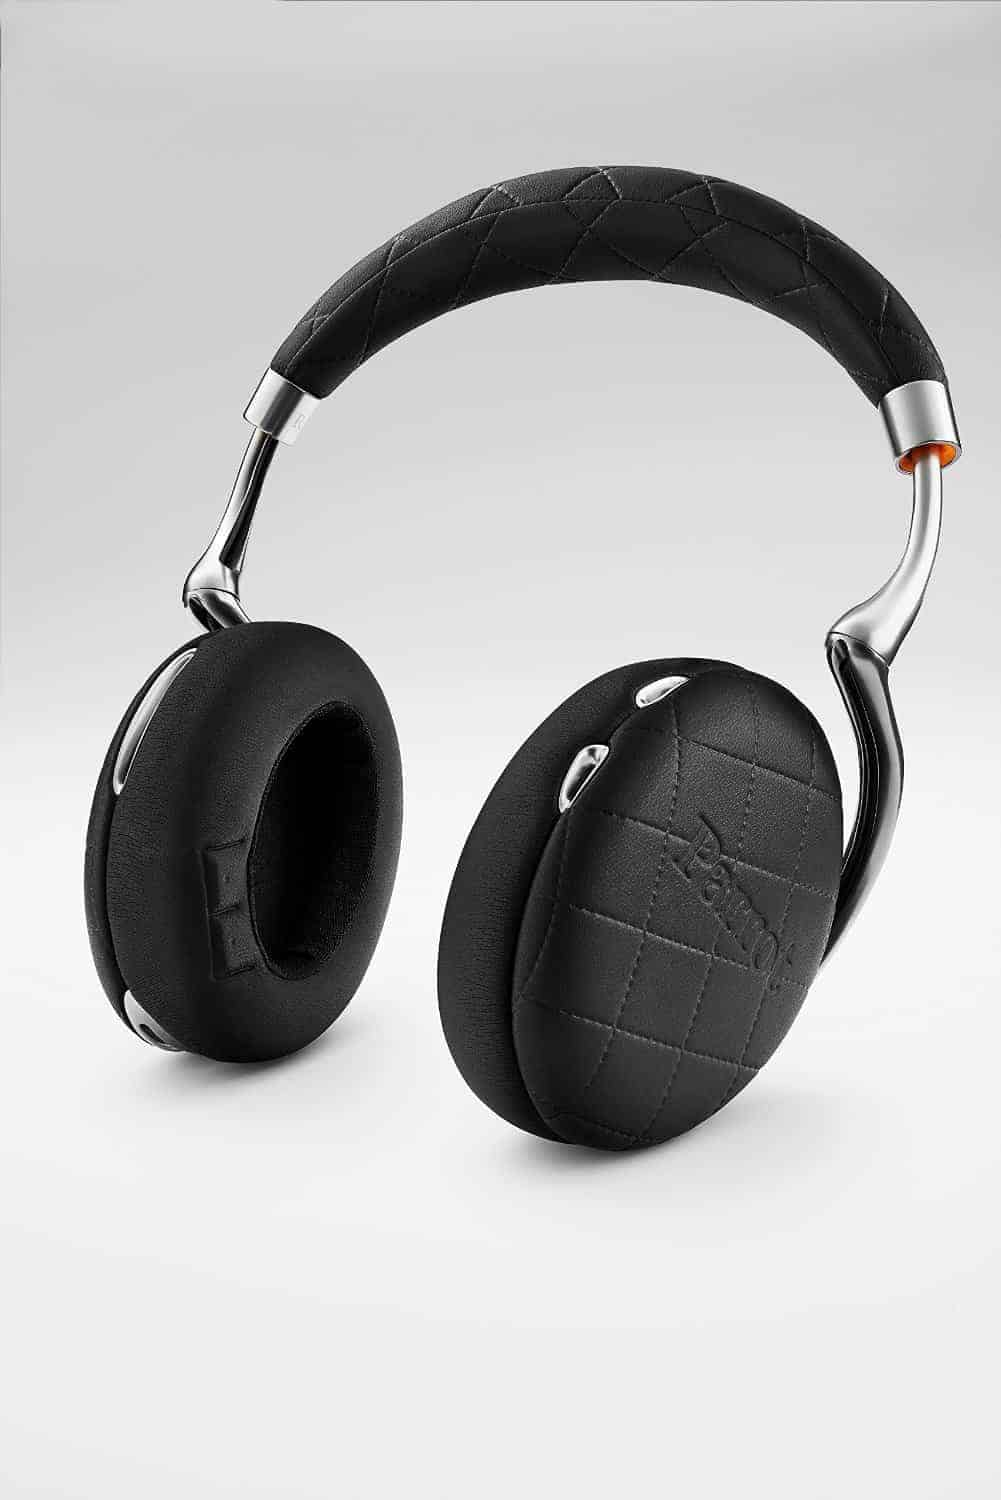 parrot zik 3 0 review the rate inc. Black Bedroom Furniture Sets. Home Design Ideas